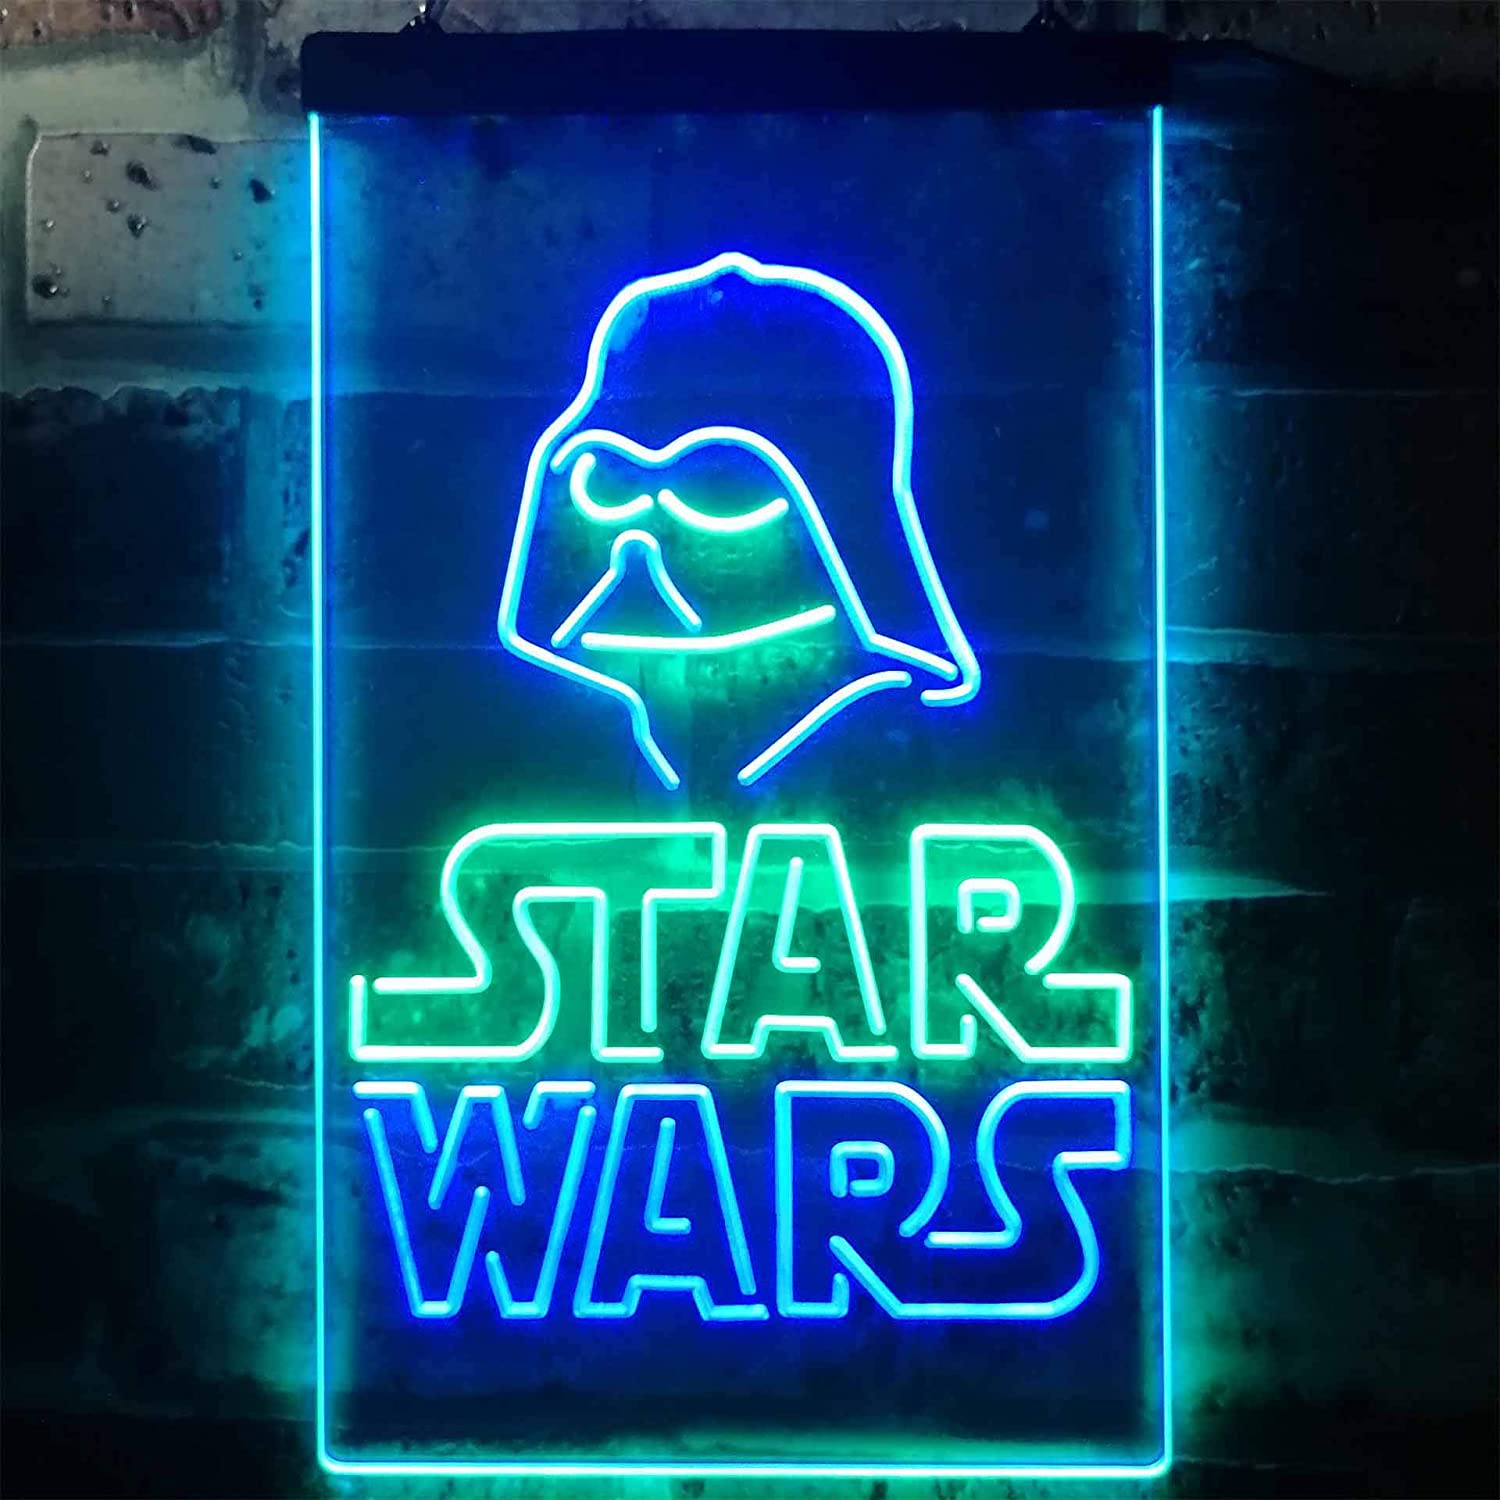 Stars Wars Ranking TOP16 Darth Vader Game Room Sign mart Colorful LED Neon Man Cave